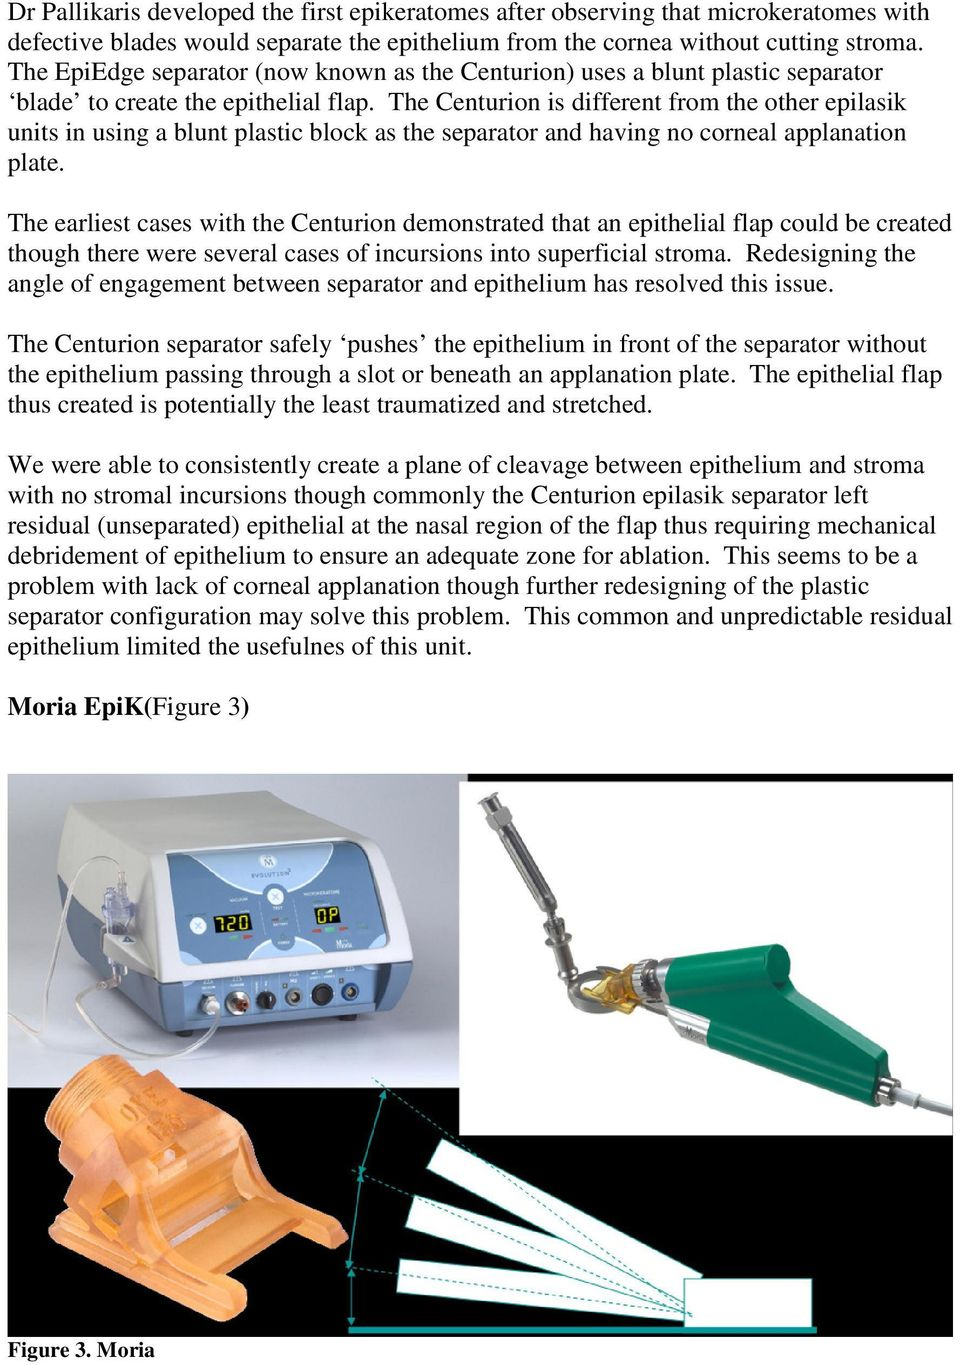 The Centurion is different from the other epilasik units in using a blunt plastic block as the separator and having no corneal applanation plate.